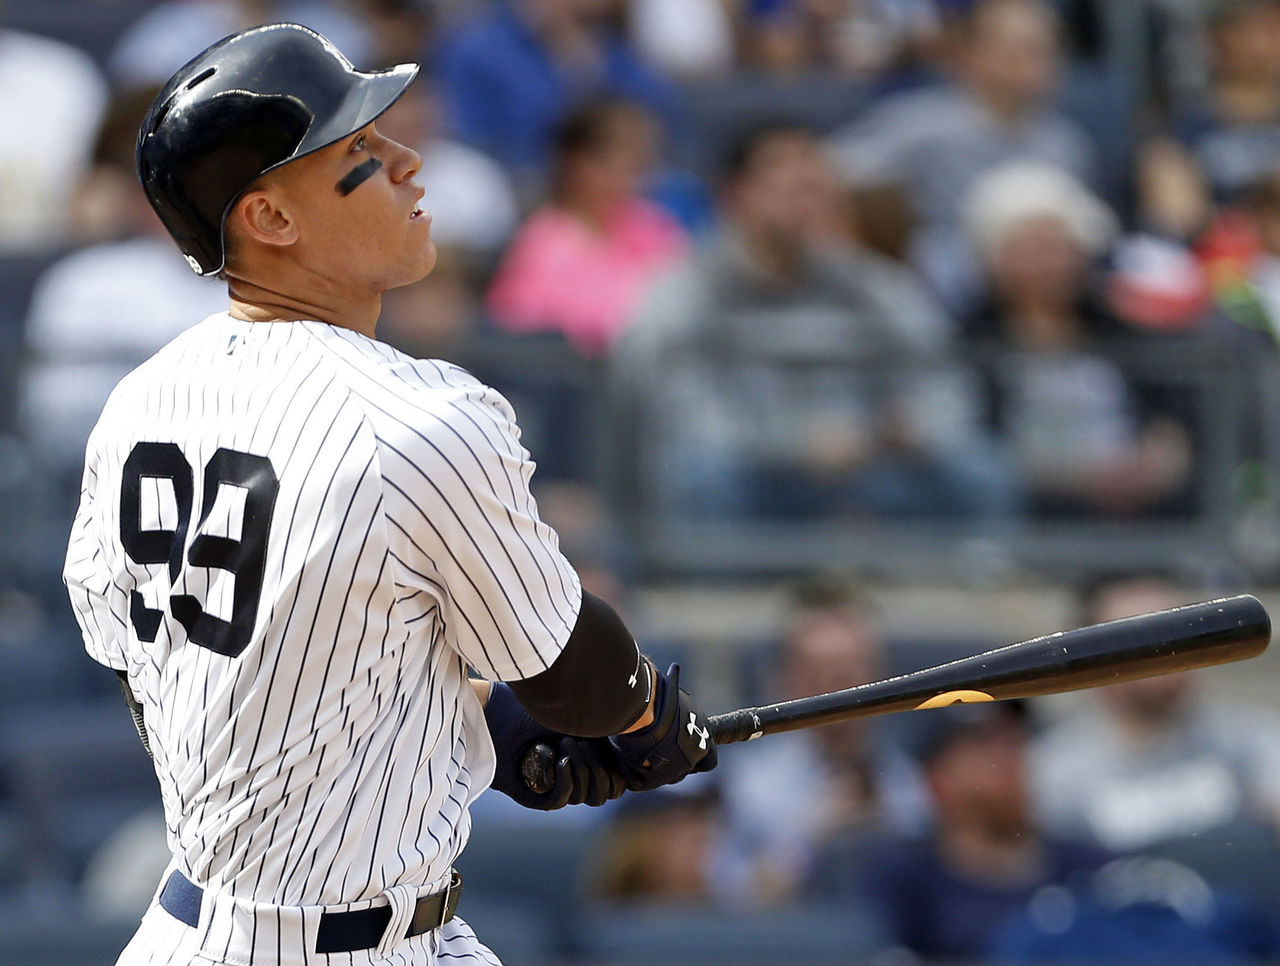 Cropped 2017 04 12t201727z 1615399686 nocid rtrmadp 3 mlb tampa bay rays at new york yankees